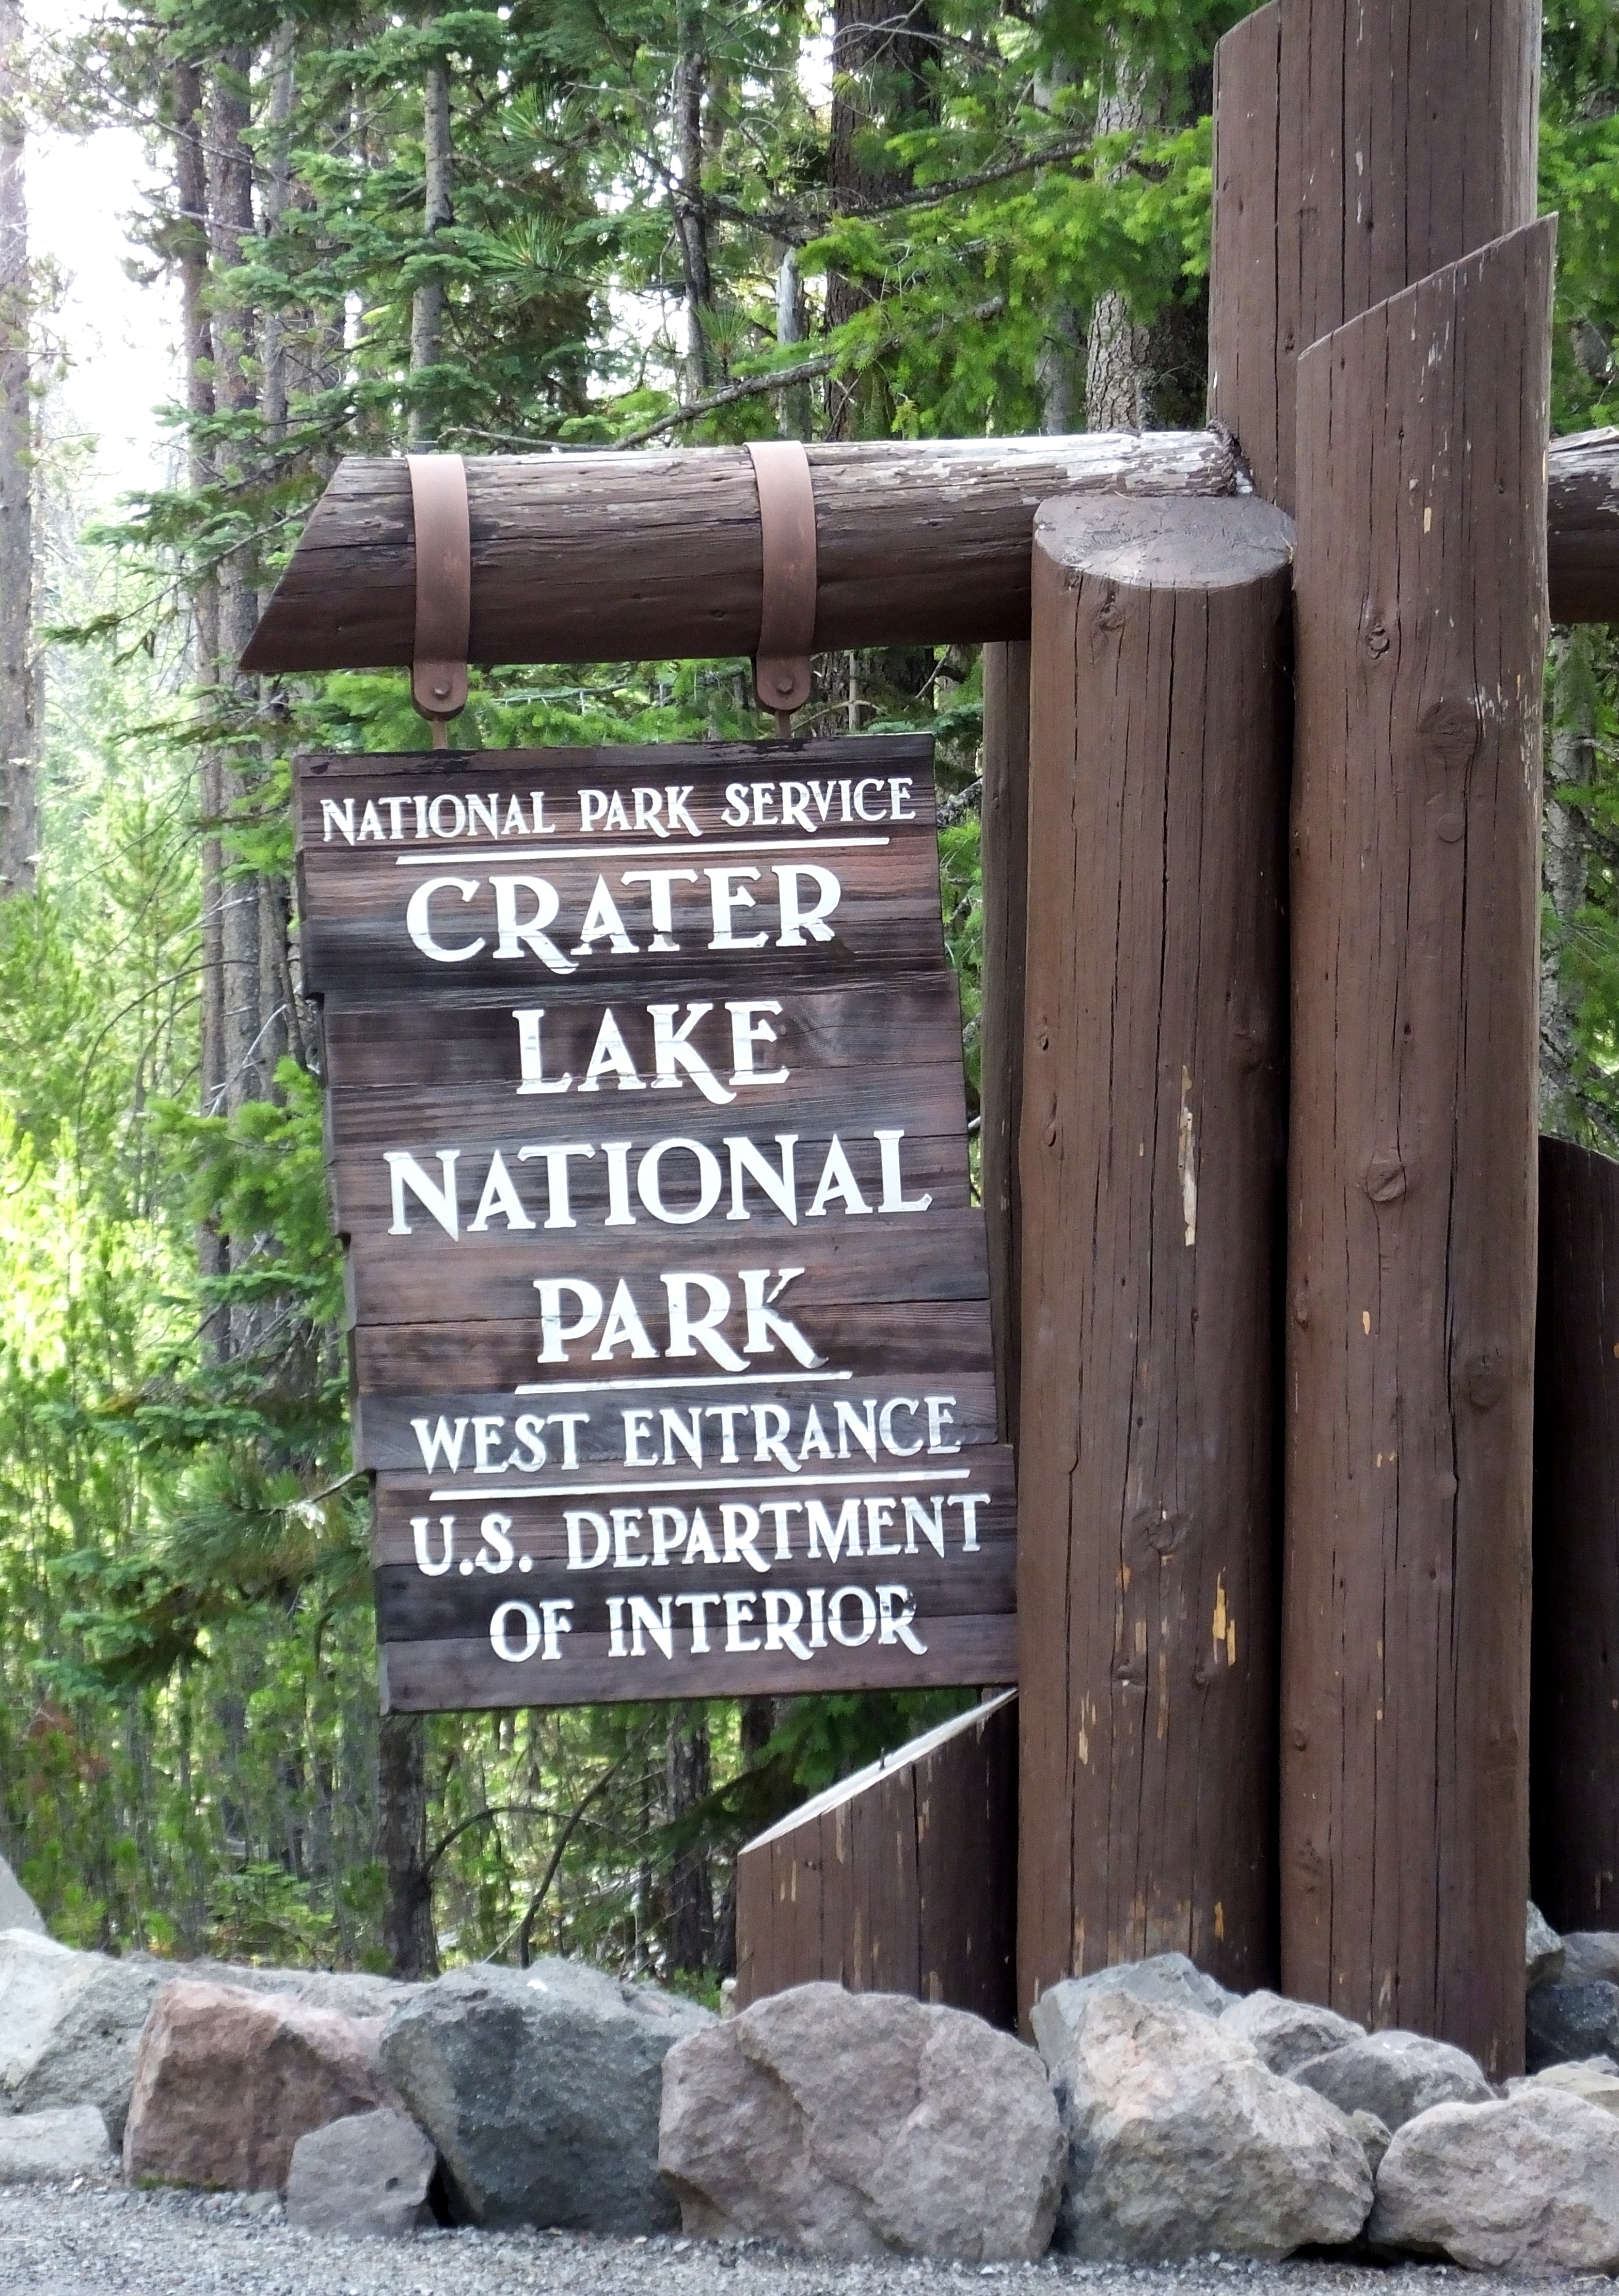 Crater Lake National Park The Life Of Your Time - 10 cool landmarks in crater lake national park